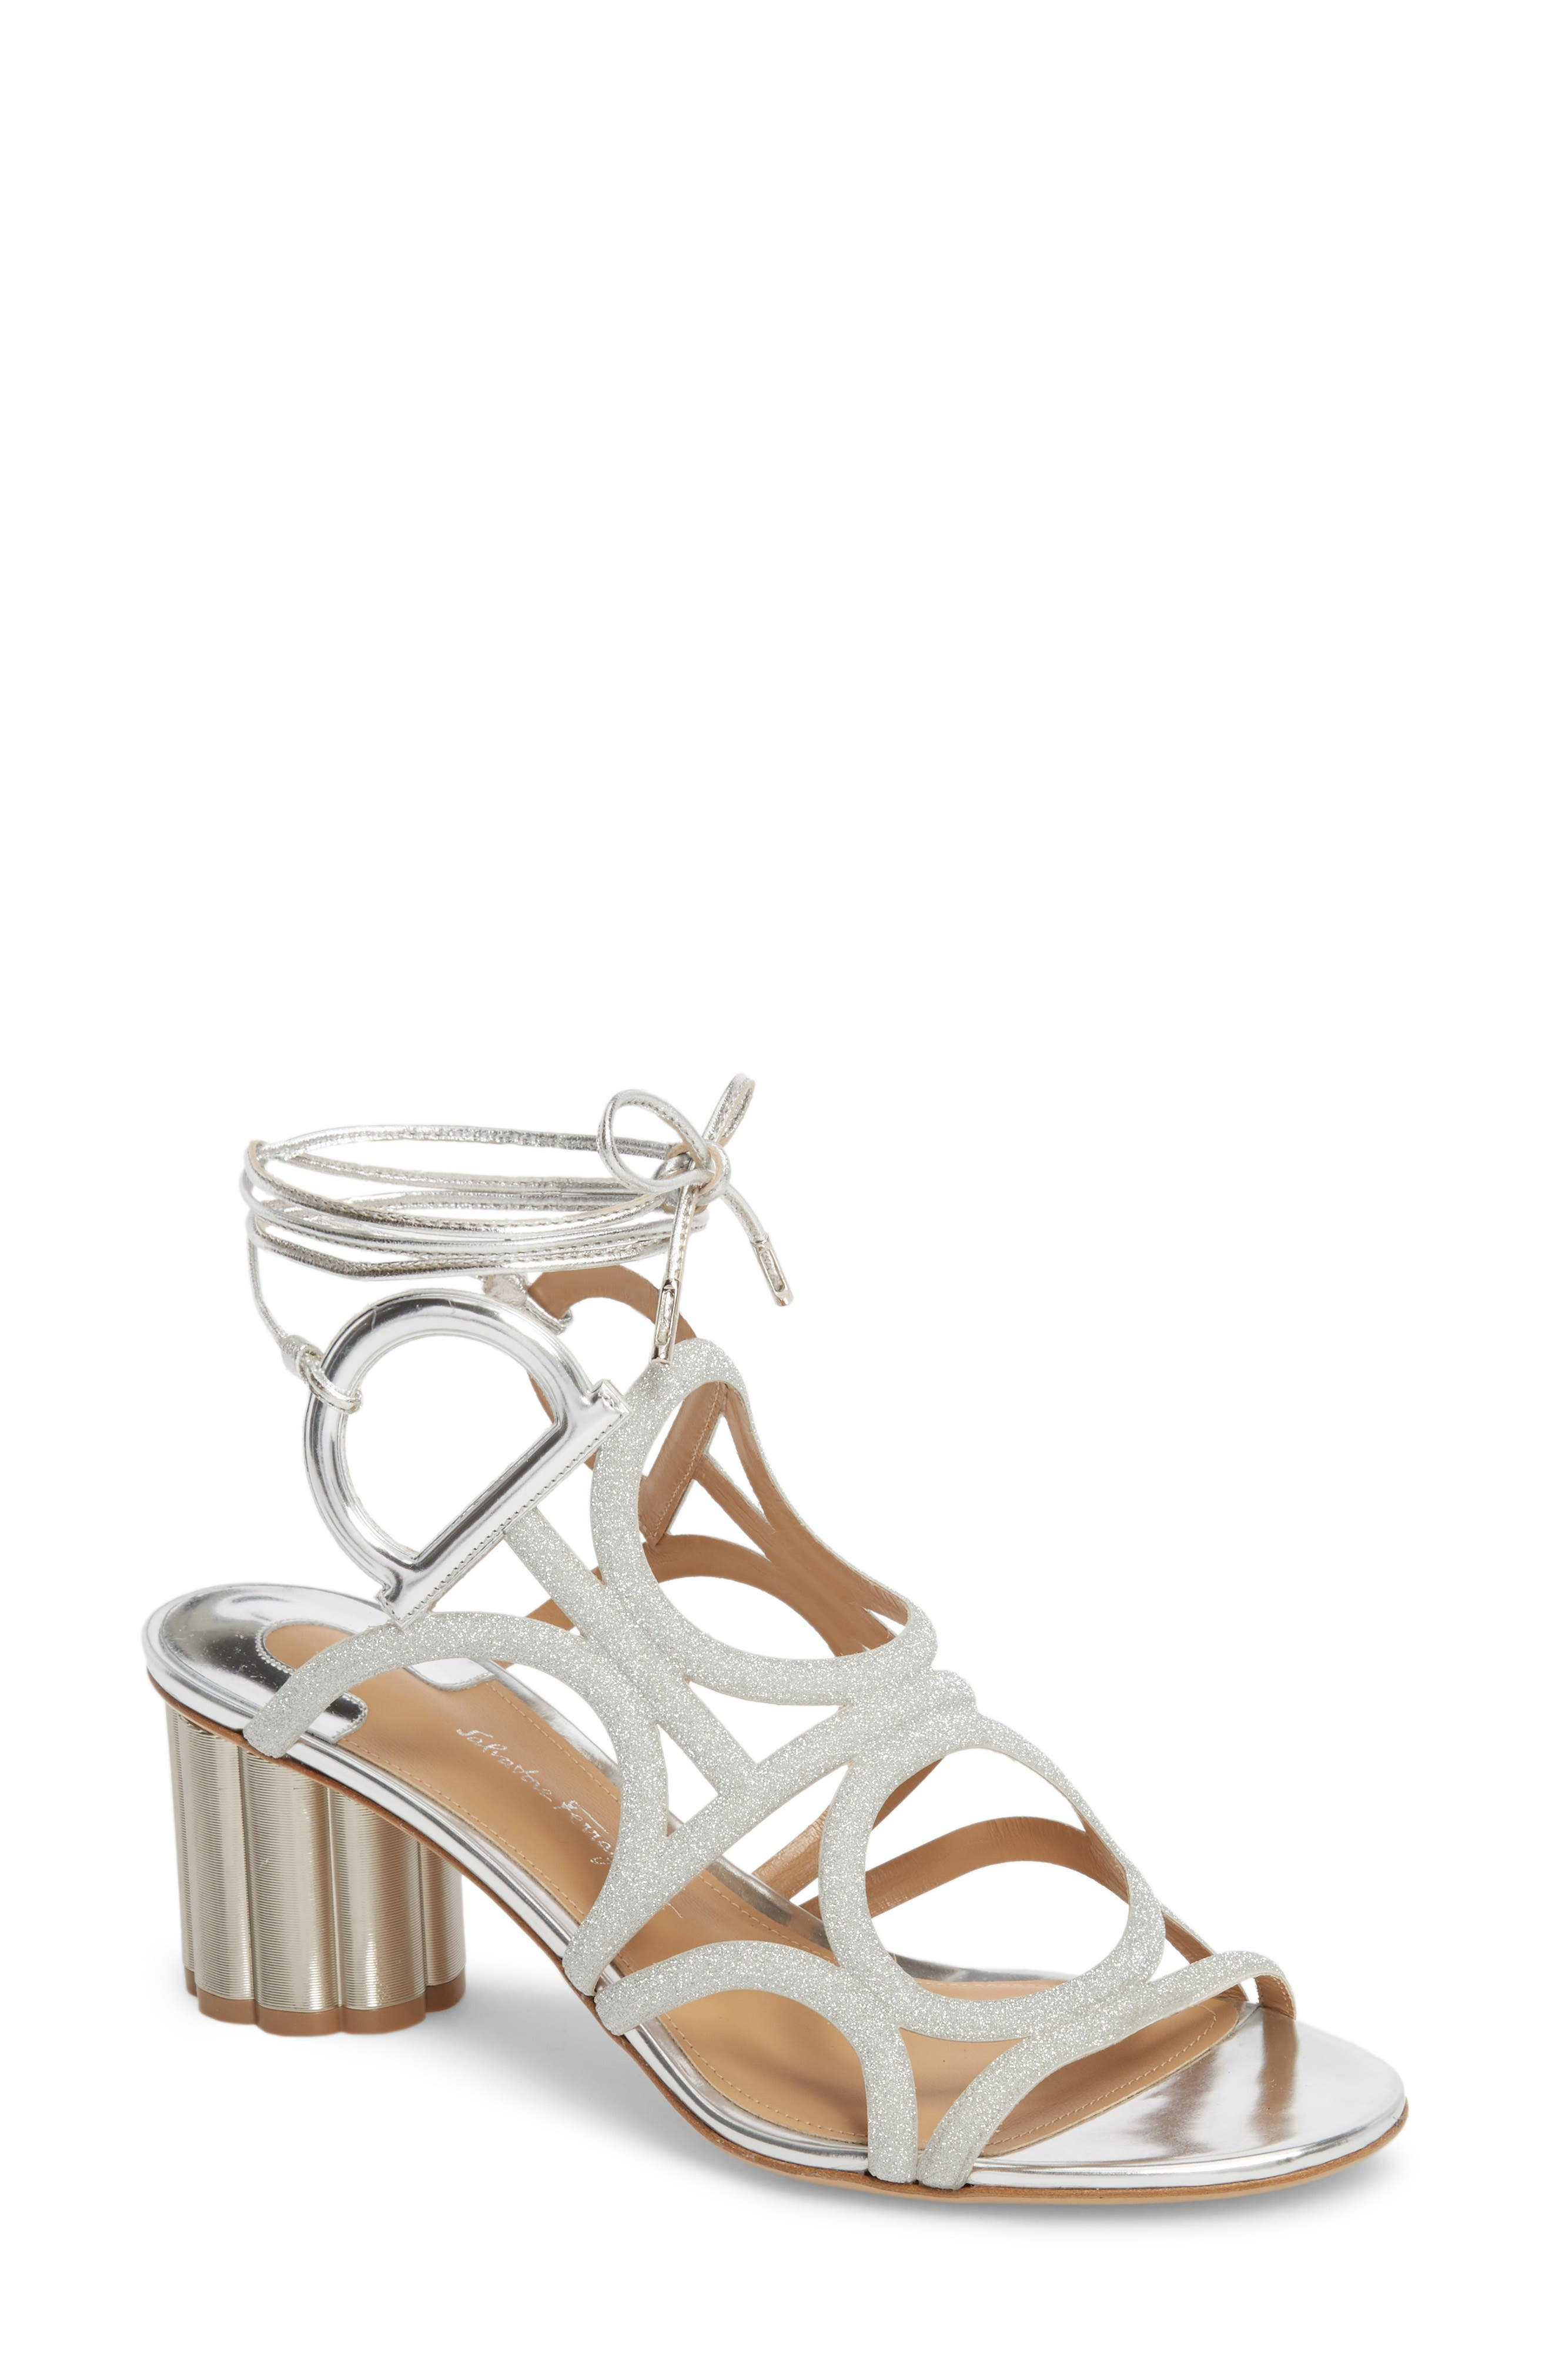 Vinci Lace-Up Block Heel Sandal,                             Main thumbnail 1, color,                             SILVER